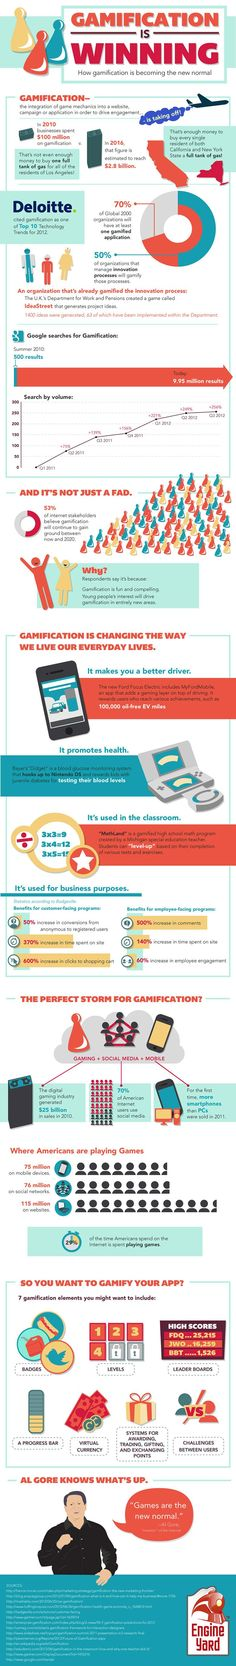 """Gamification is Winning. How Gamification is Becoming the """"New"""" Normal (infographic)"""